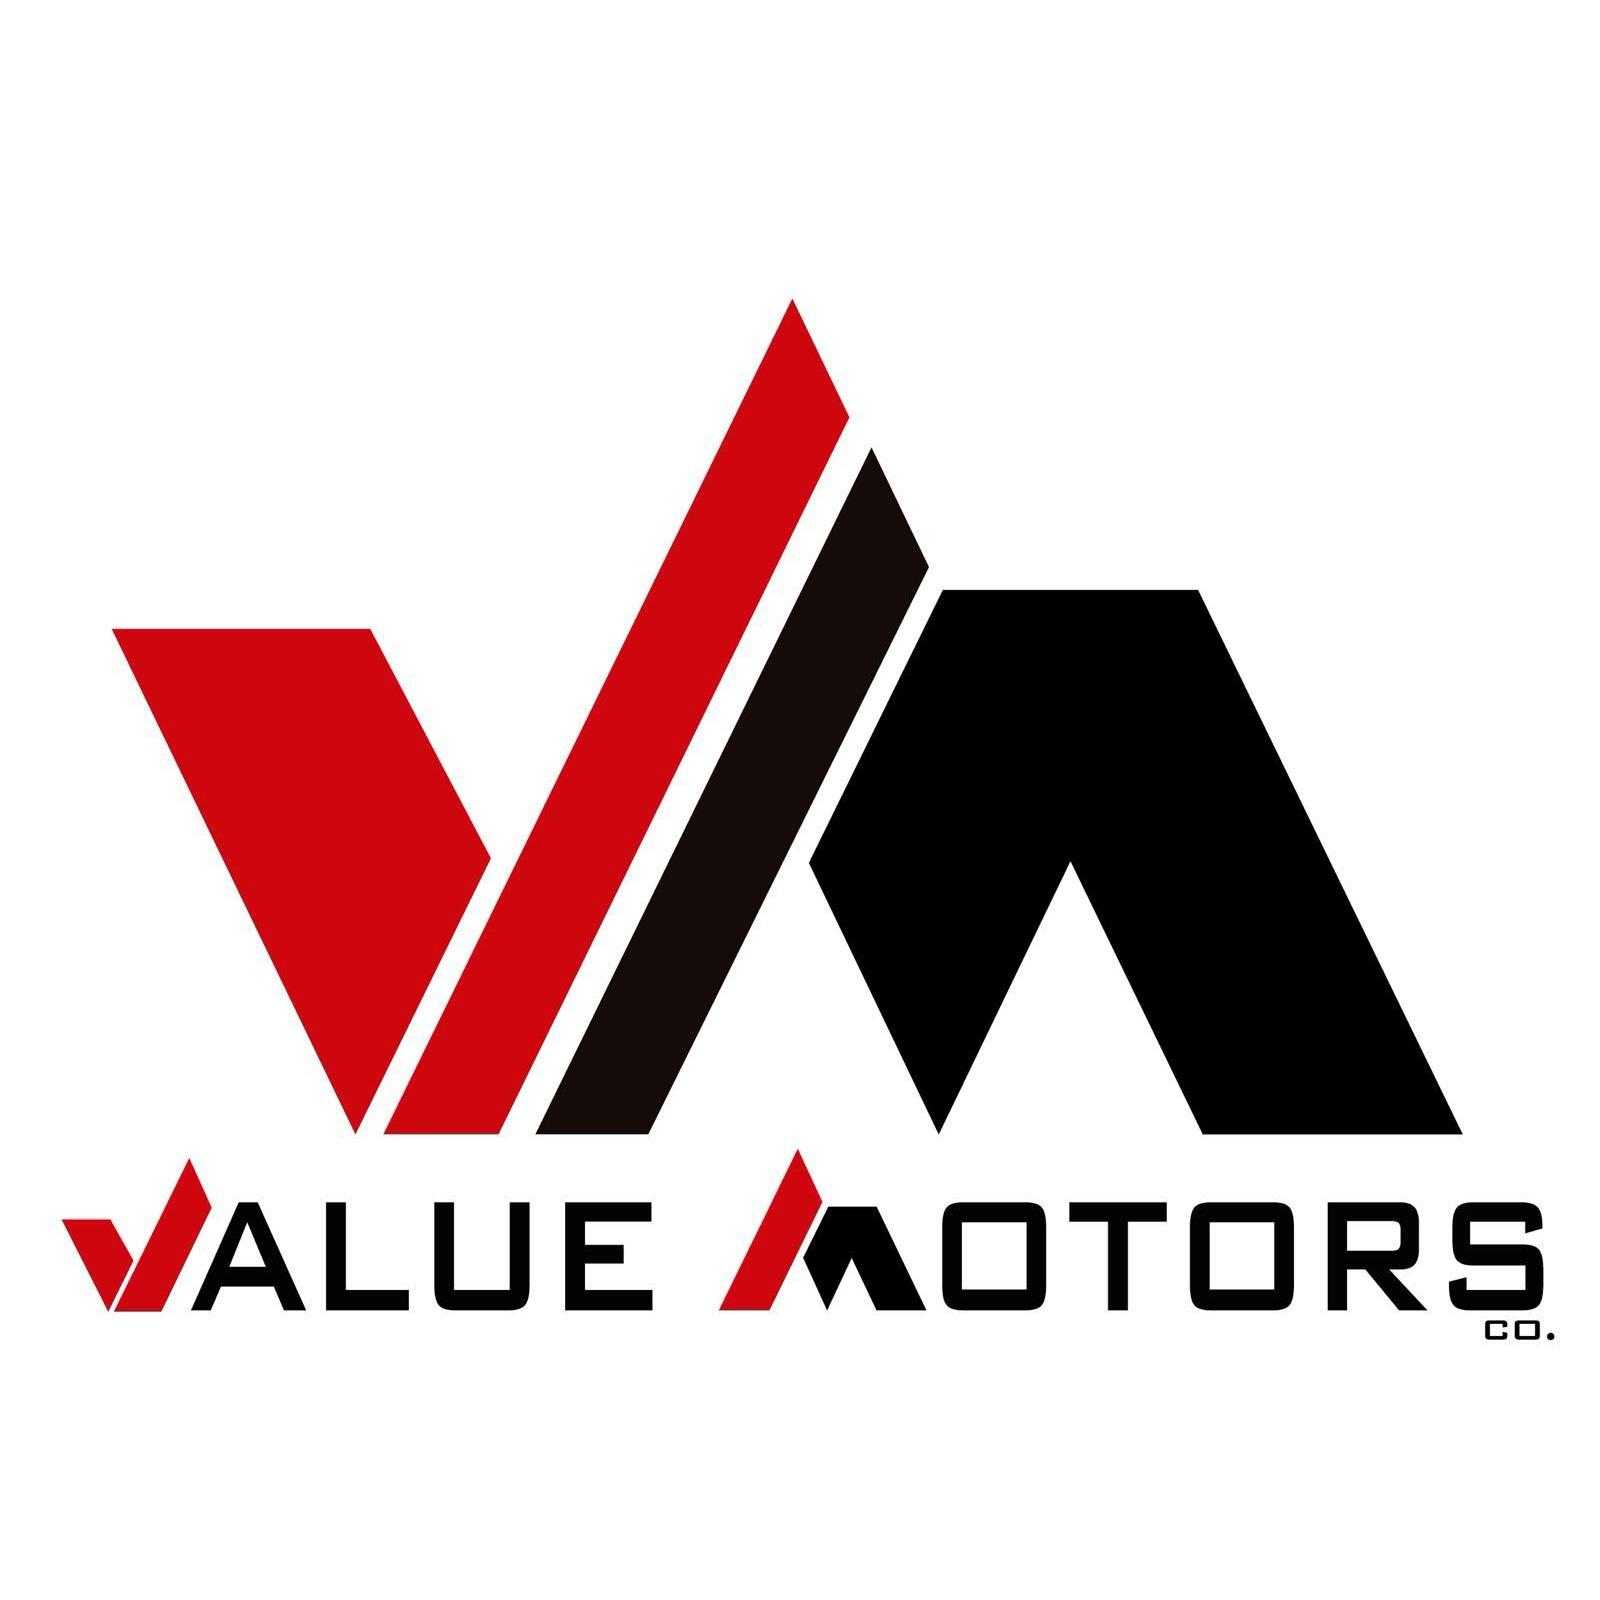 value motors company best used cars metairie kenner new orleans baton rouge gulfport. Black Bedroom Furniture Sets. Home Design Ideas